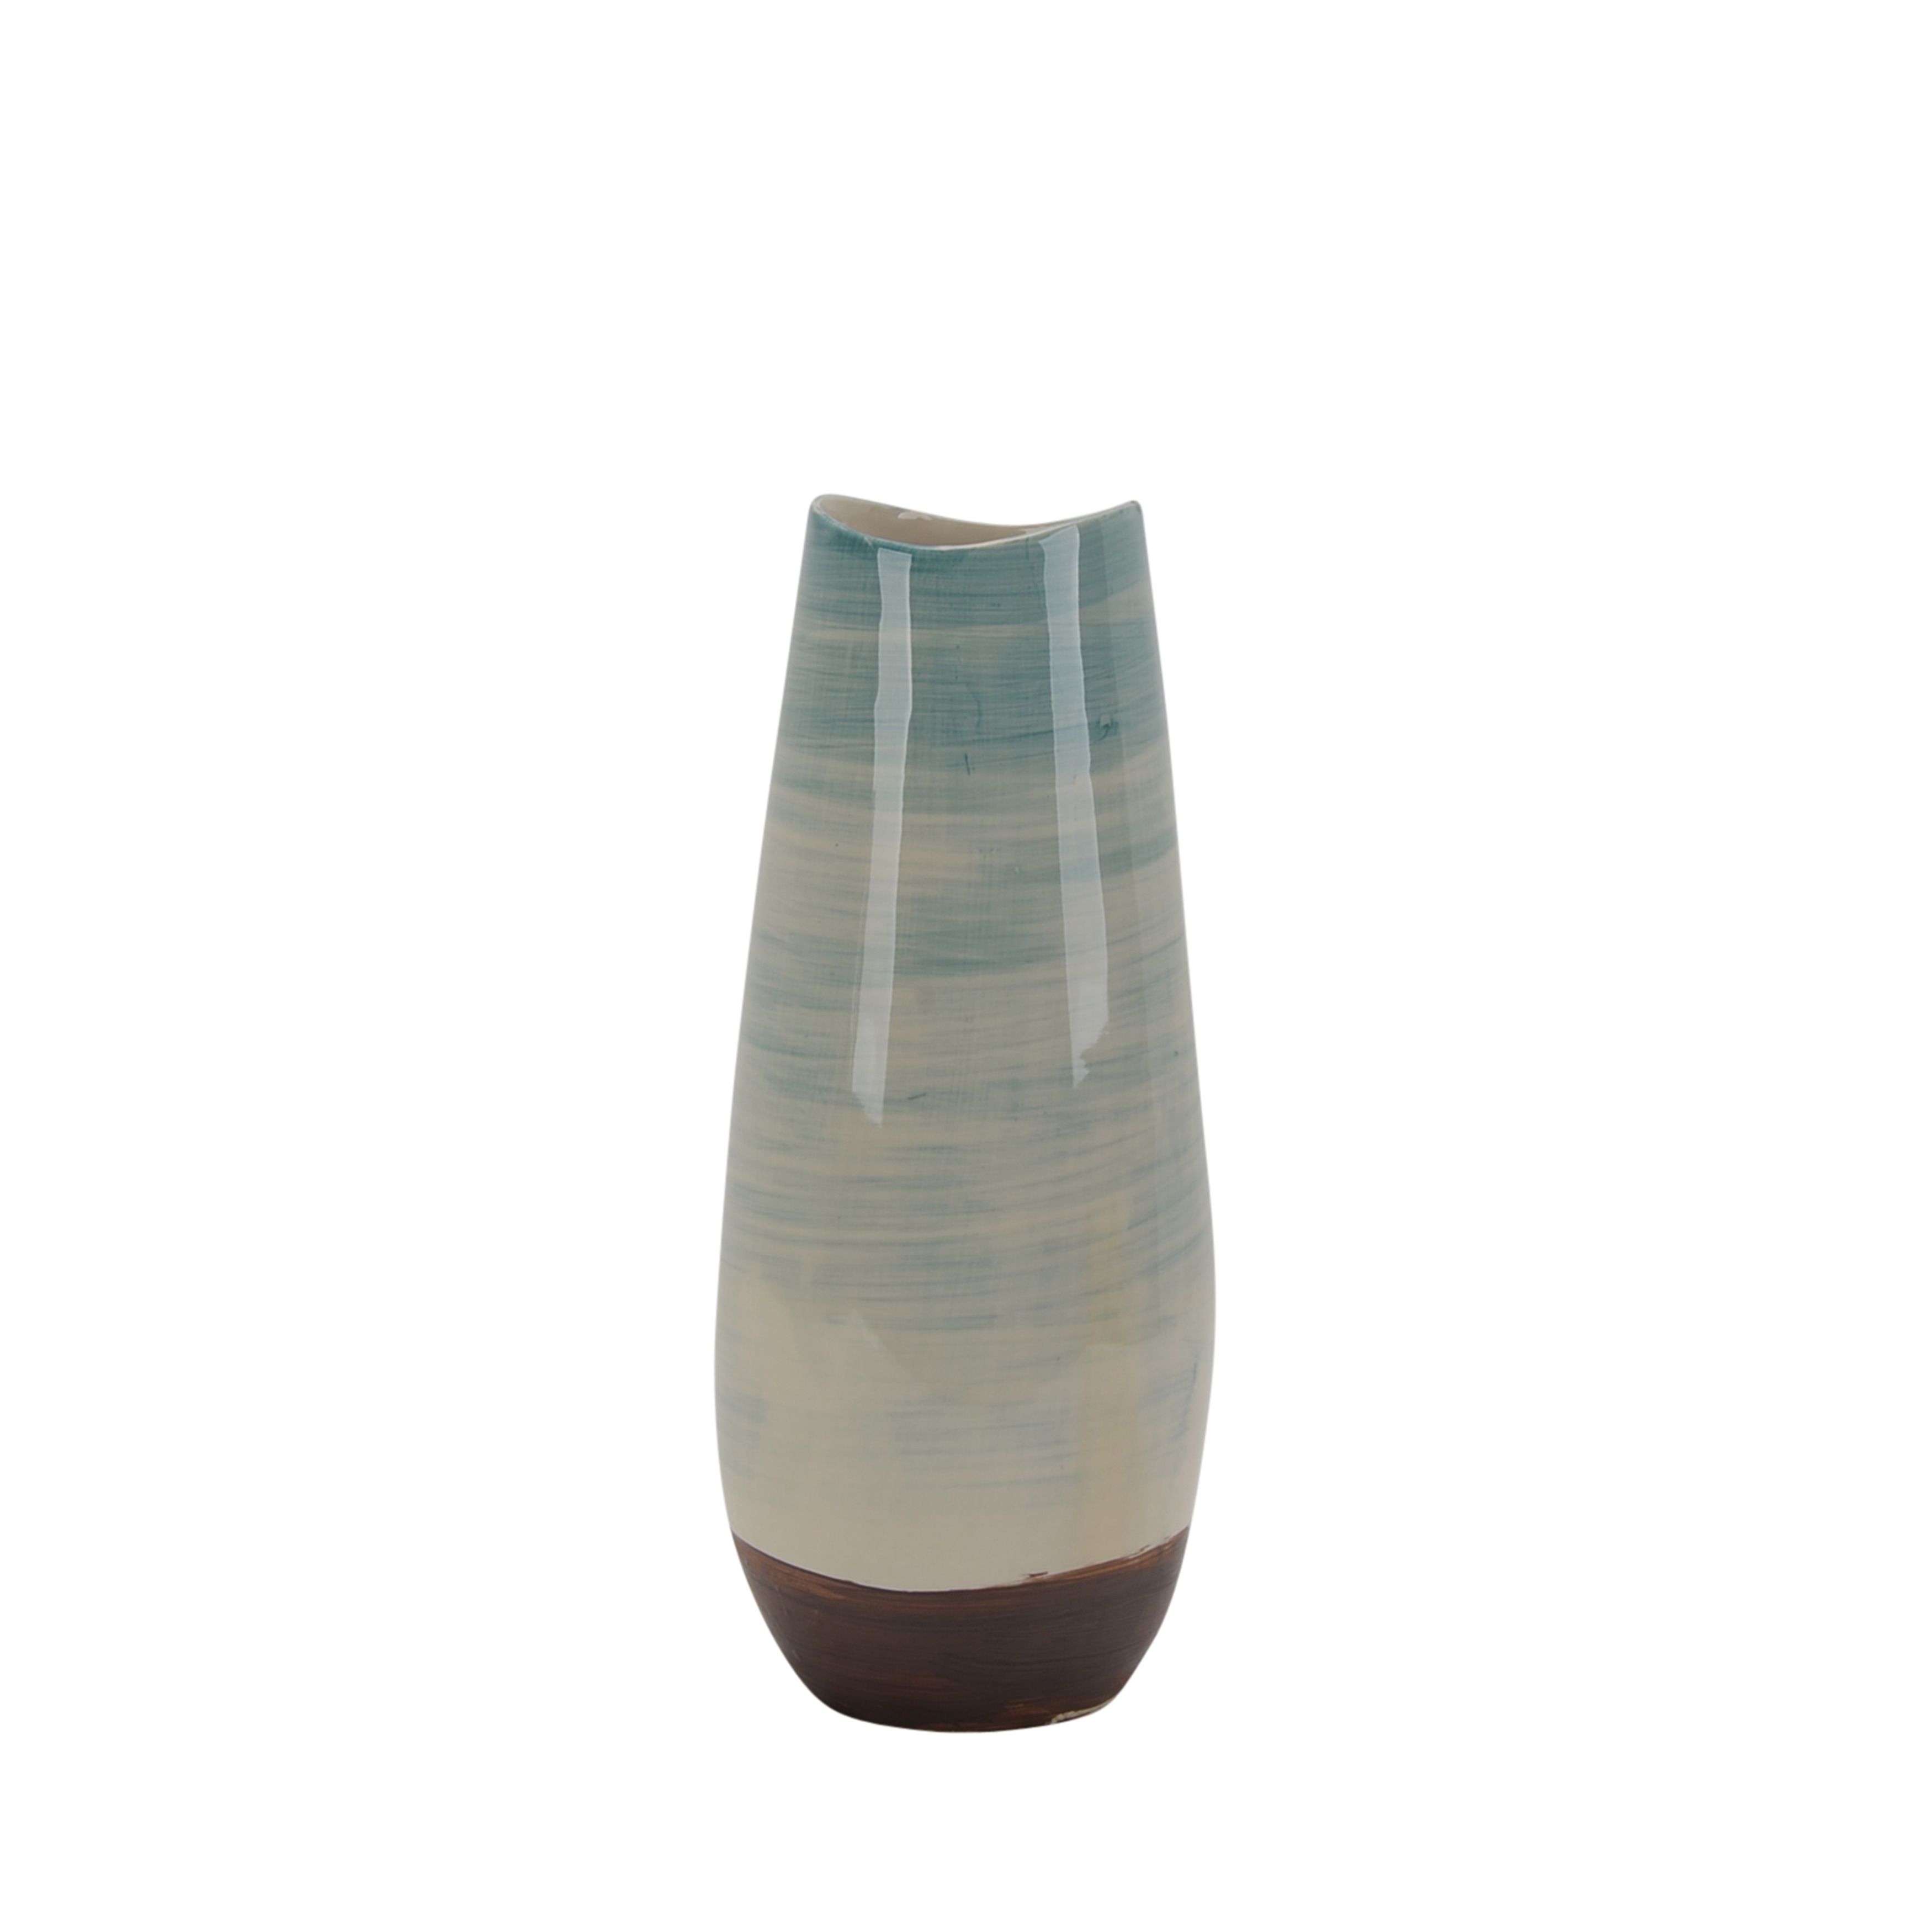 Transitional Ceramic Vase with Round Base, Multicolor